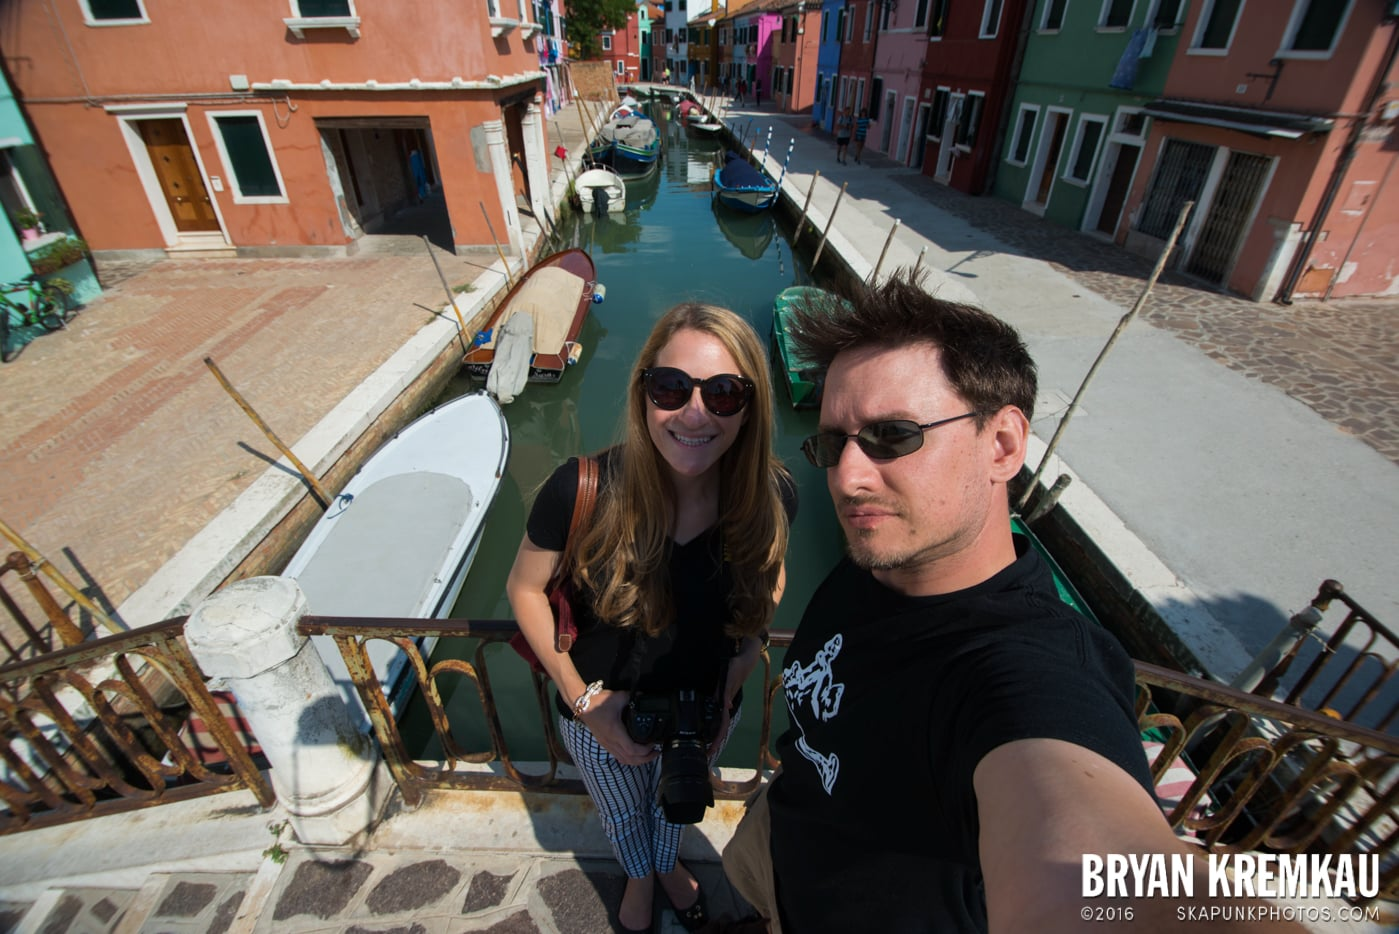 Italy Vacation - Day 6: Murano, Burano, Venice - 9.14.13 (49)